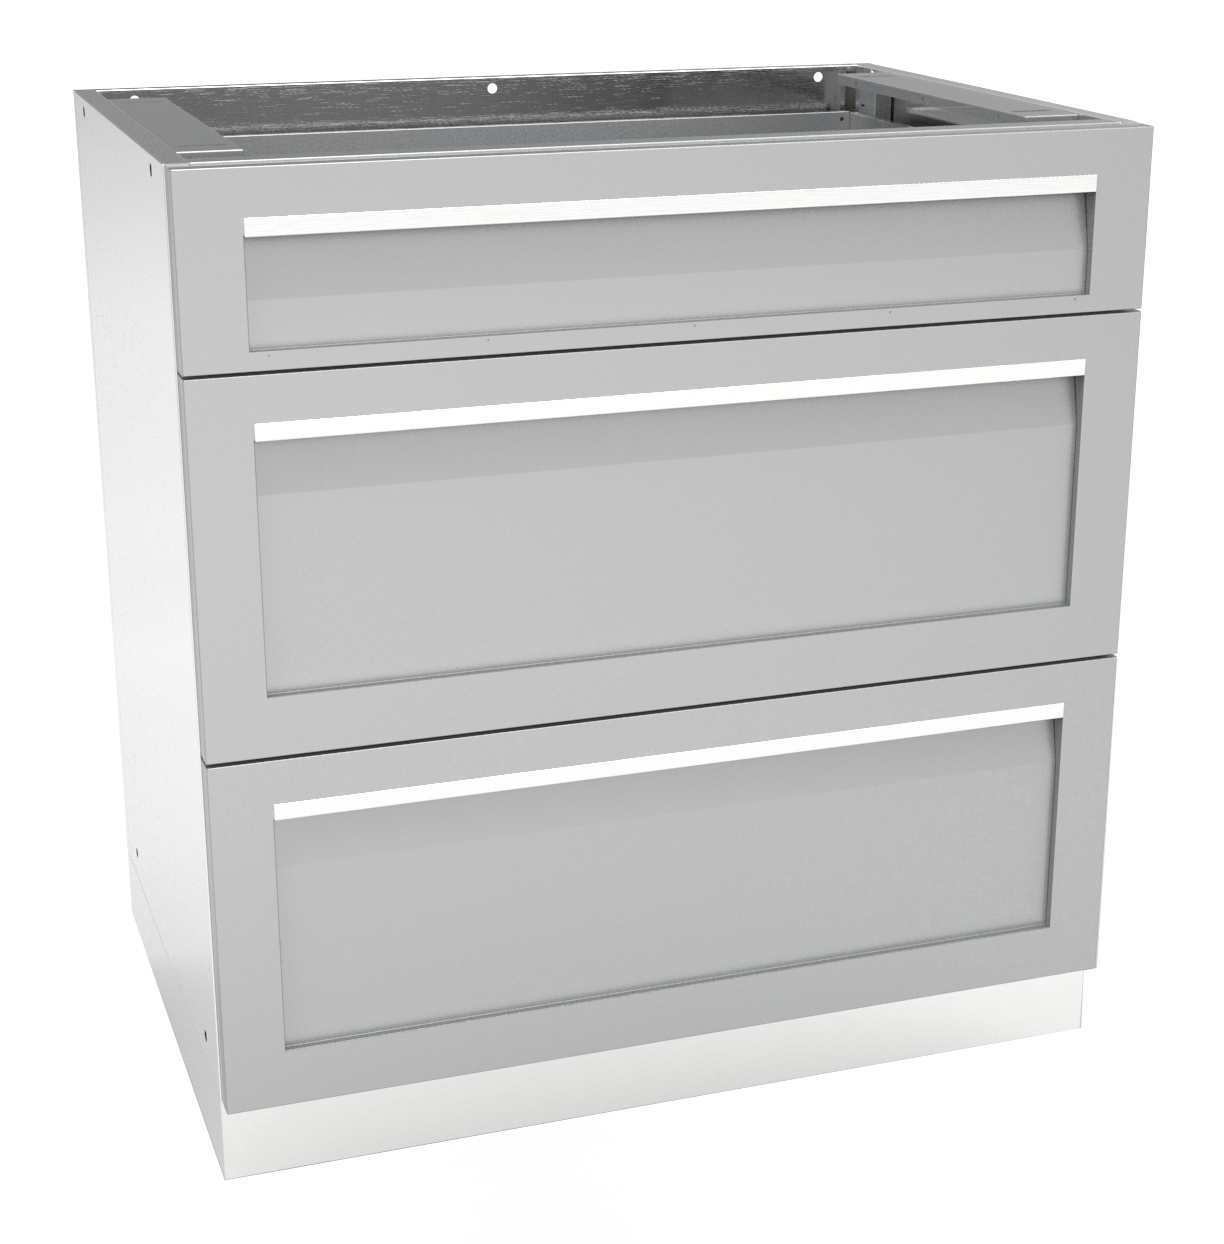 3 drawer outdoor kitchen cabinet g40003 4 life outdoor for Kitchen cabinet drawers